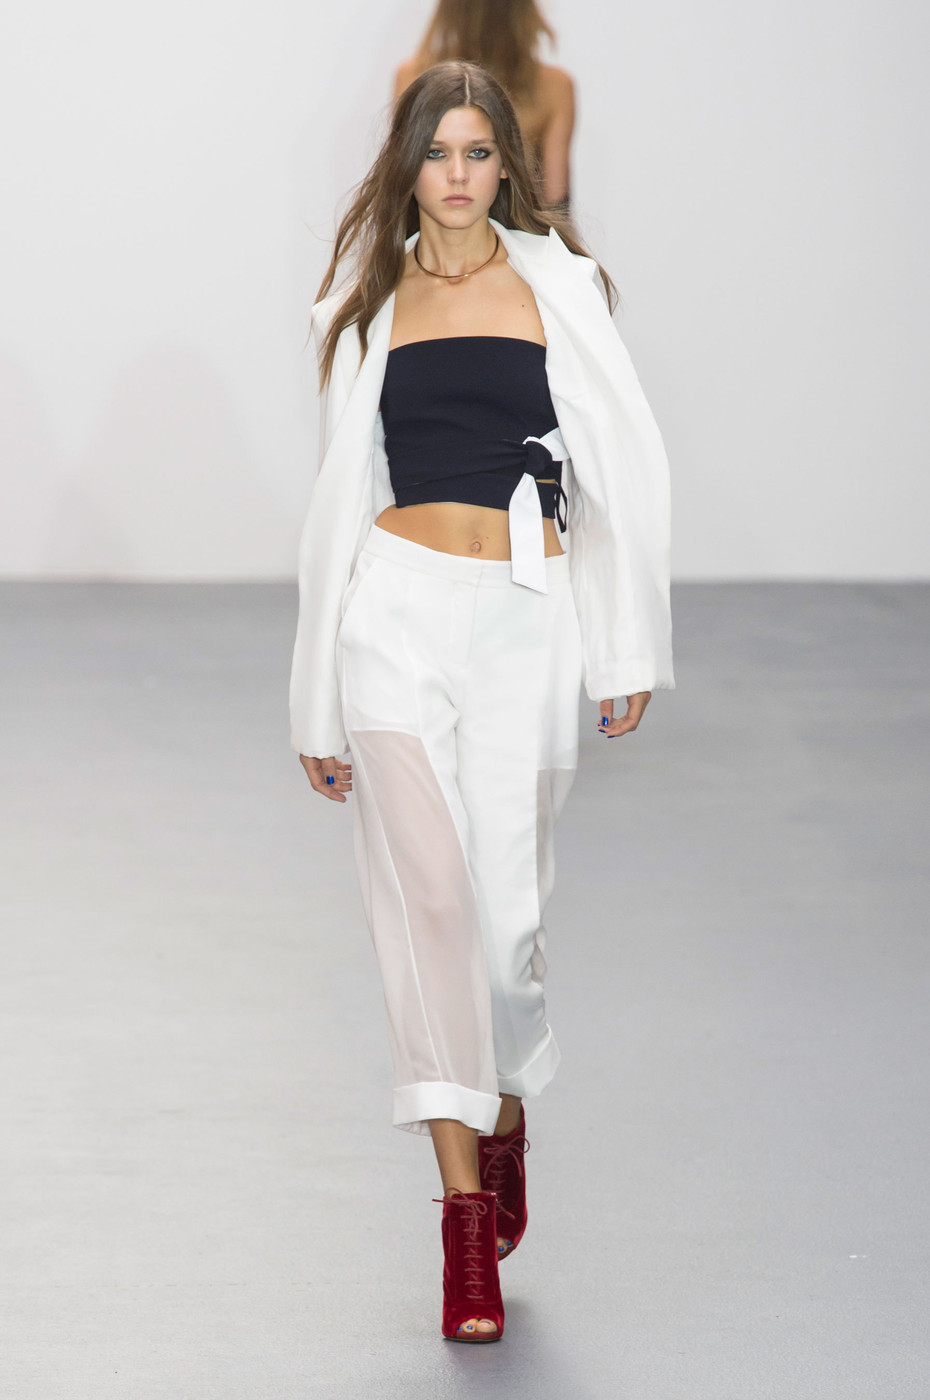 Issa At London Fashion Week Spring 2016 Livingly